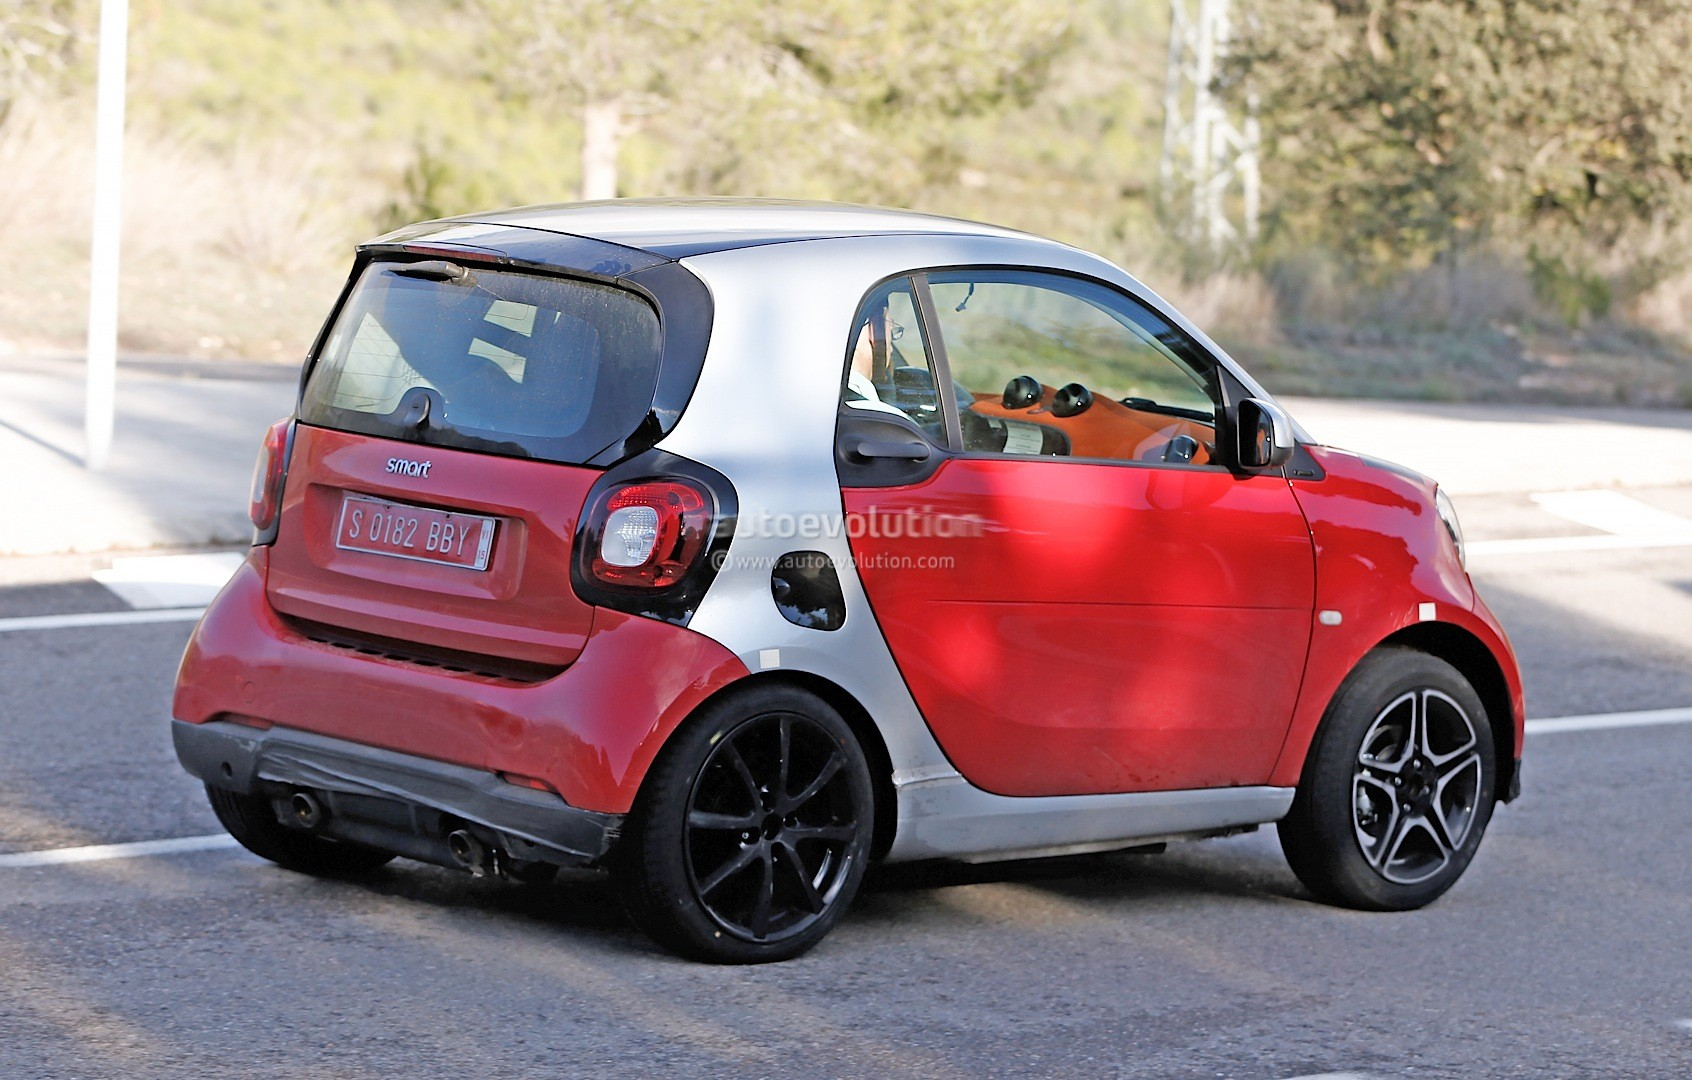 2015 smart fortwo brabus shows details geneva debut likely autoevolution. Black Bedroom Furniture Sets. Home Design Ideas